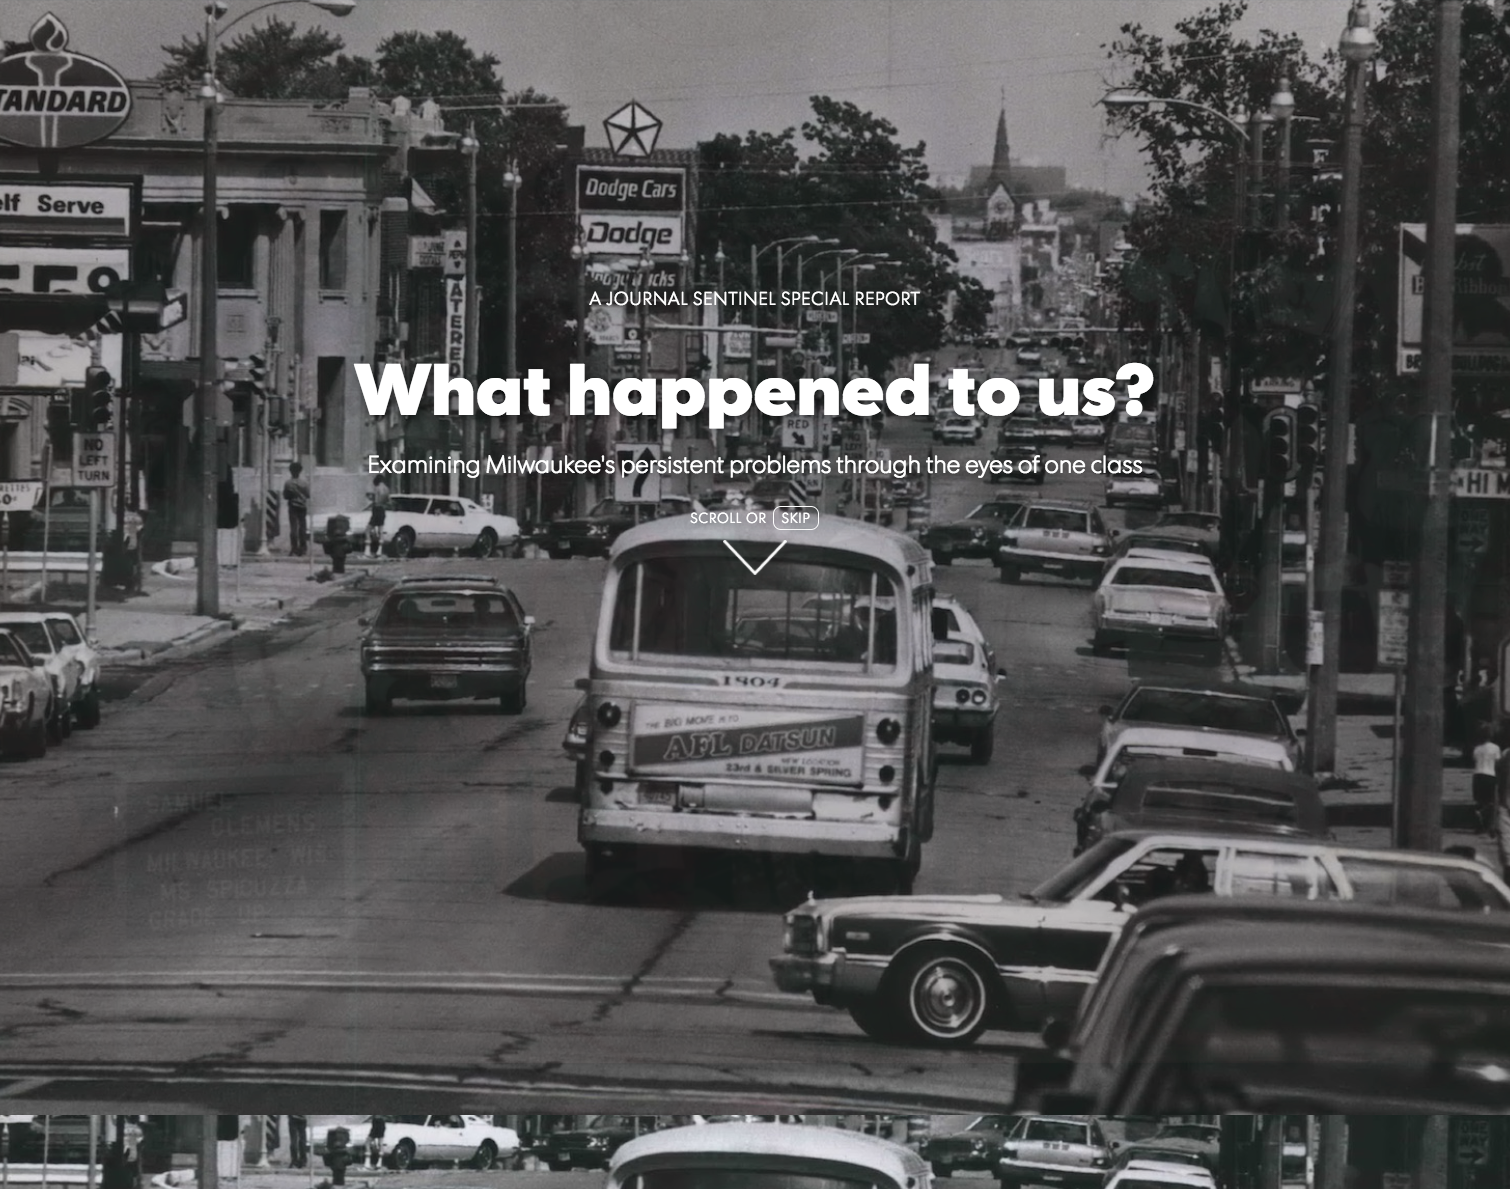 What happened to us? - Examining Milwaukee's persistent problems through the eyes of one classROLE: Introduction development contributions, series design and production